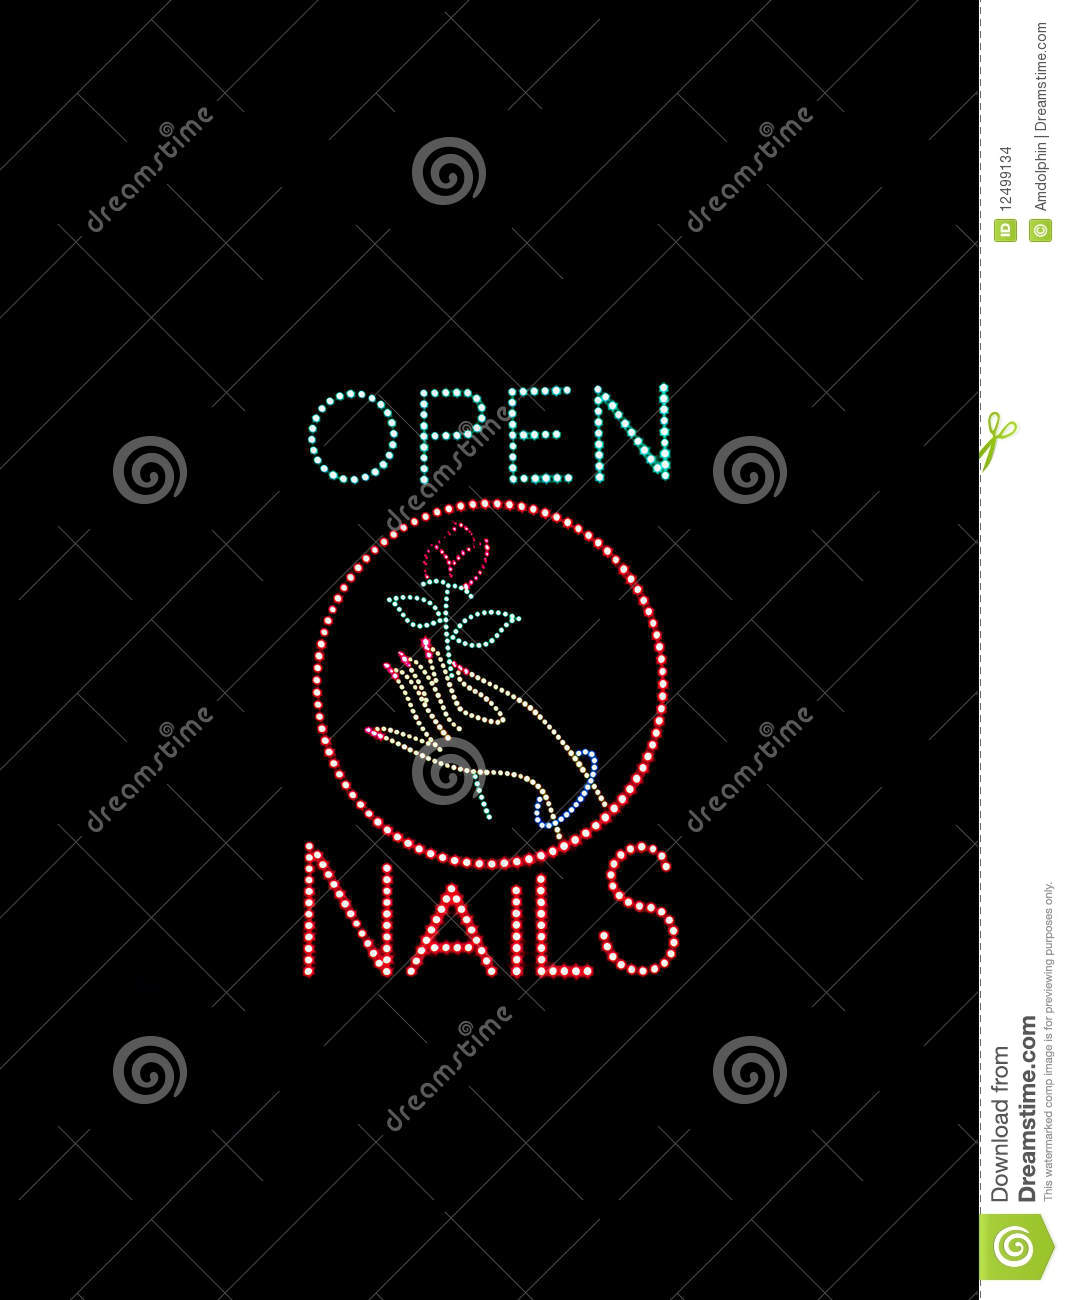 Nail Salon Open Sign stock photo. Image of glow, hand - 12499134